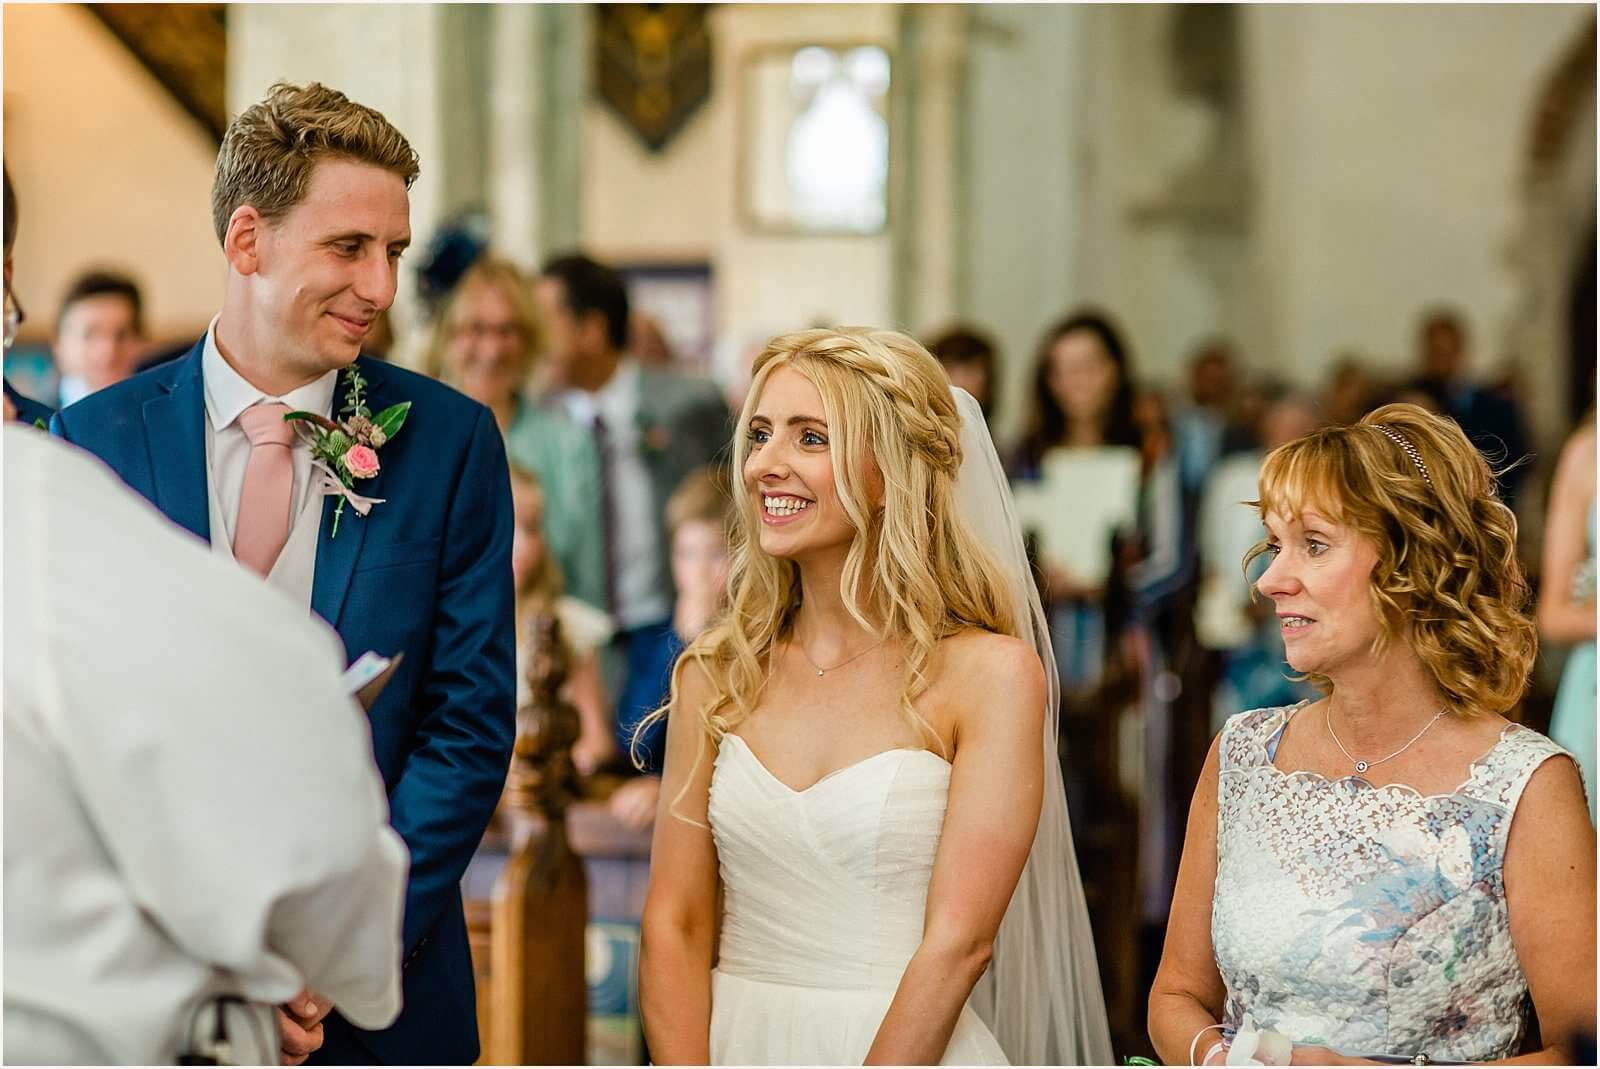 Polstead Church Wedding | Carla & Toby 26